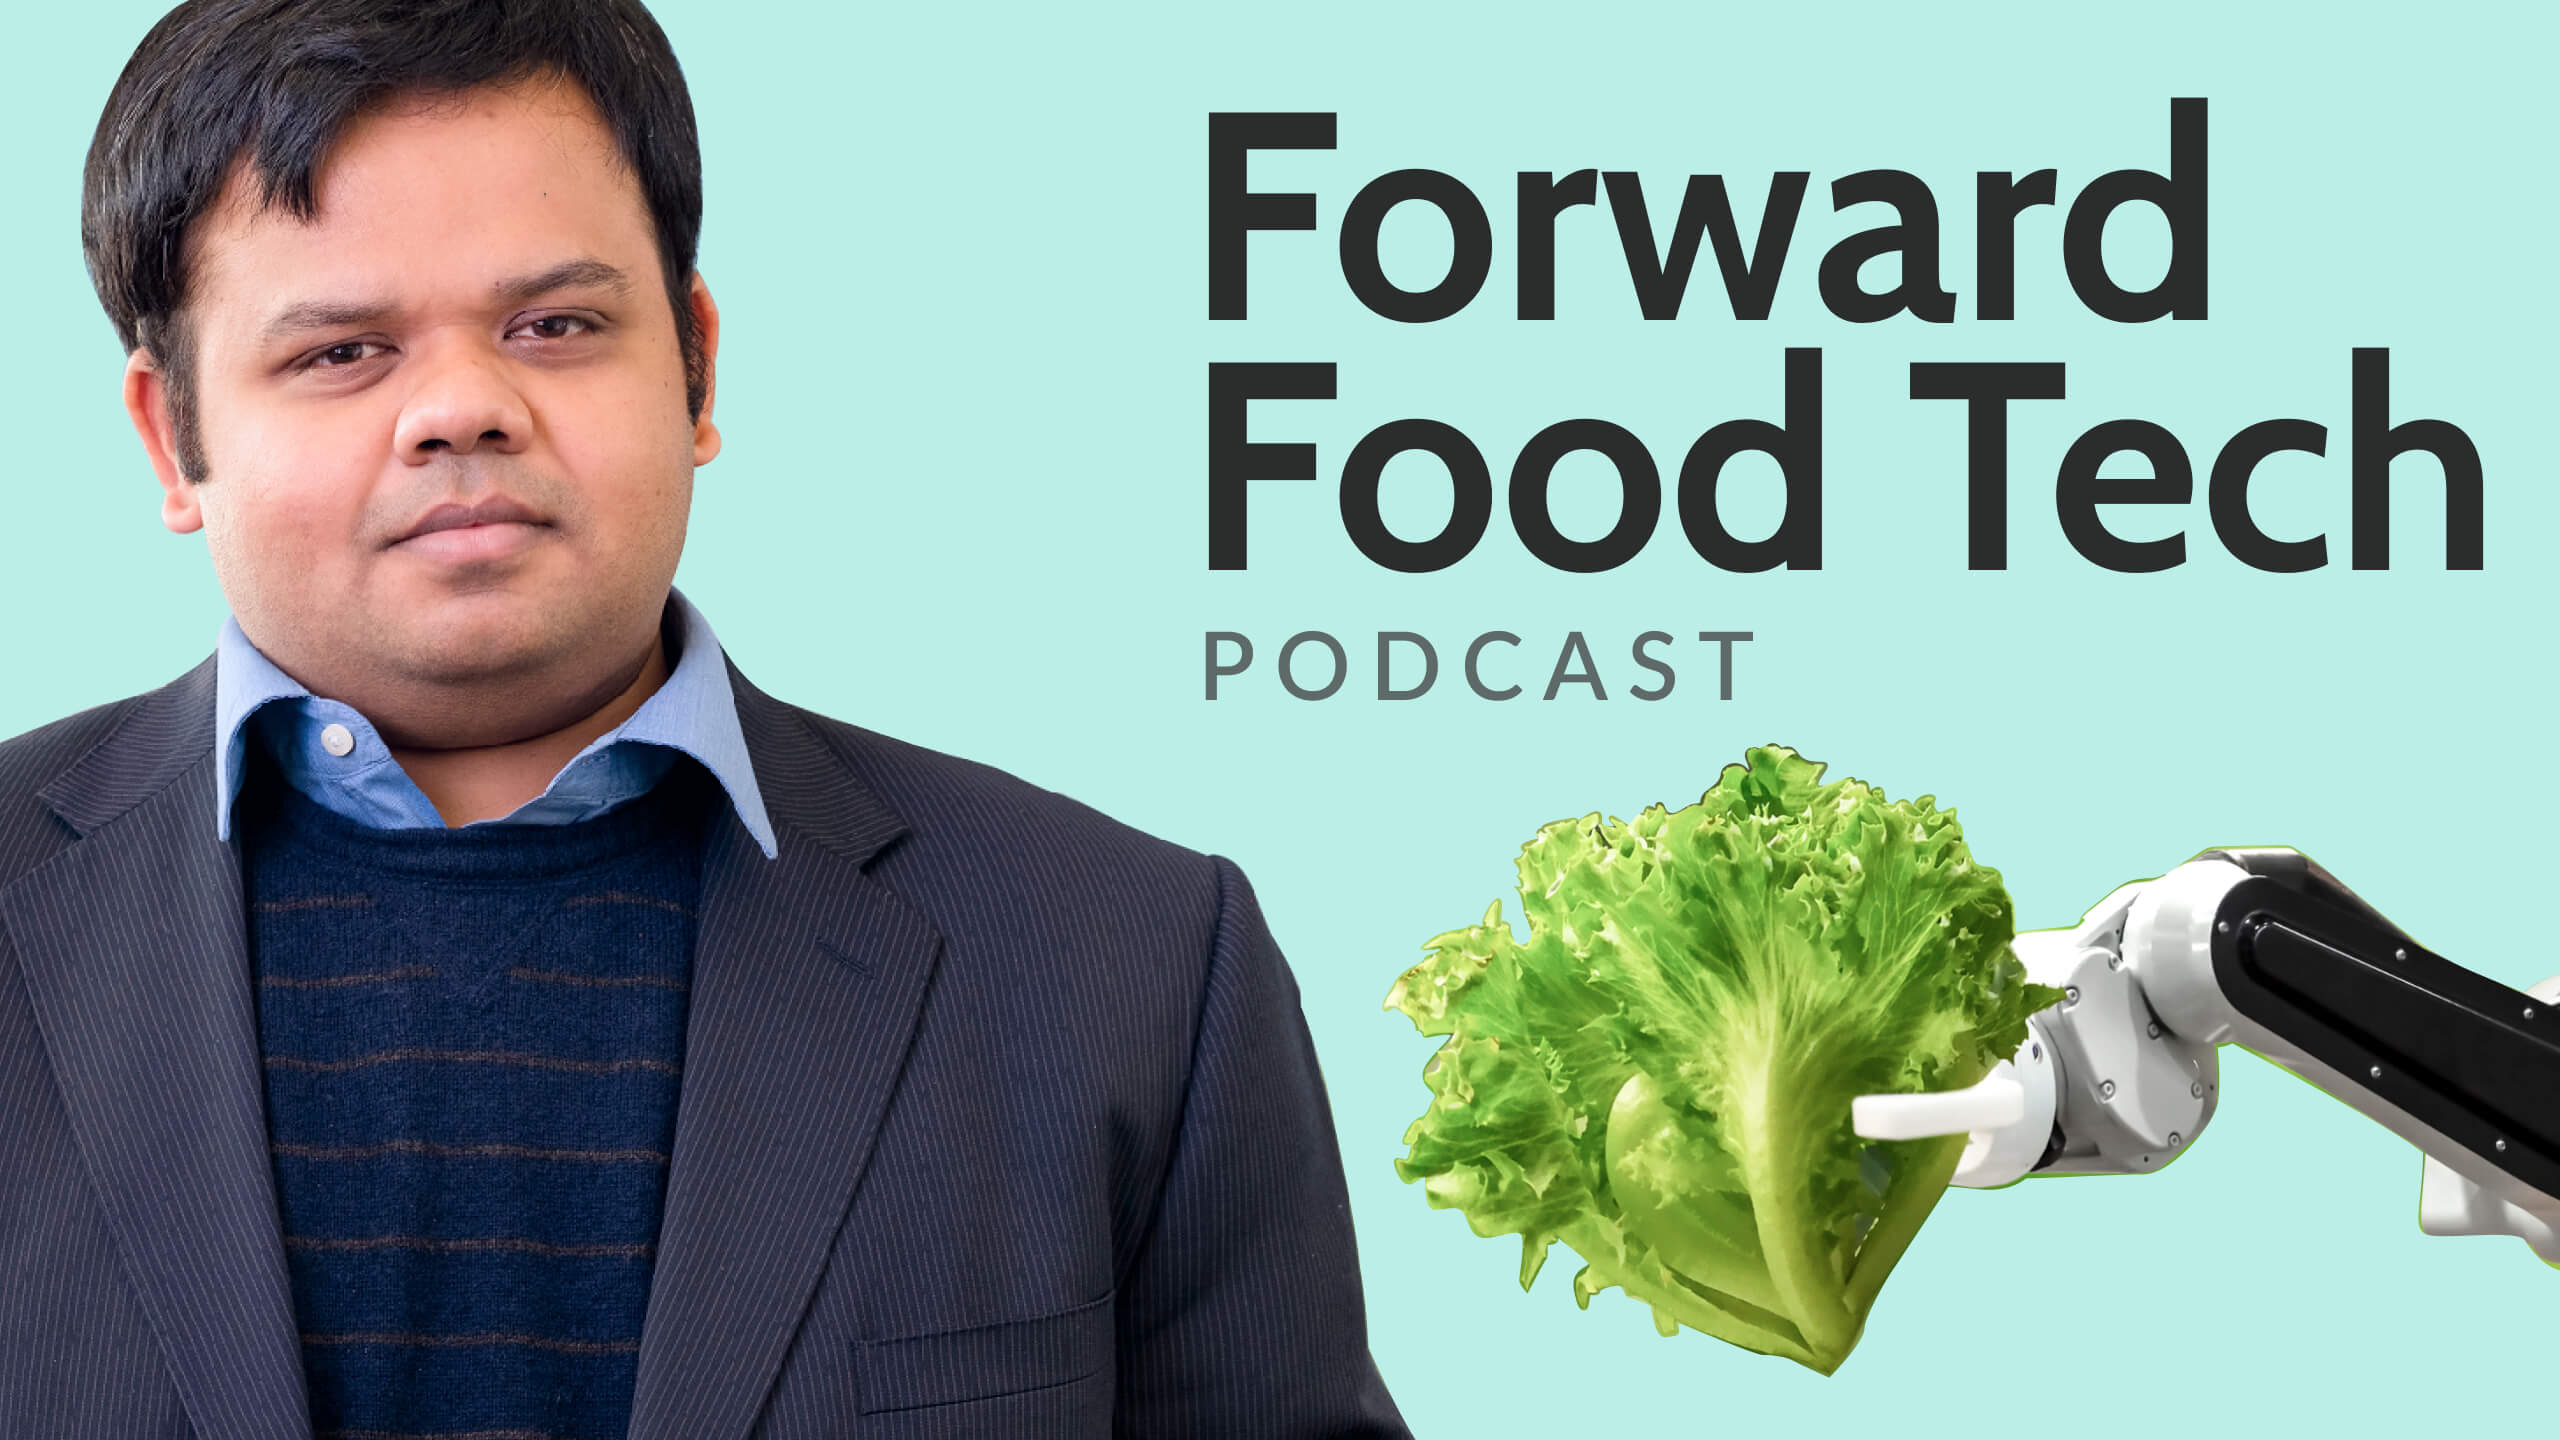 VC Raising for Agri-FoodTech Businesses | FowardFood.Tech